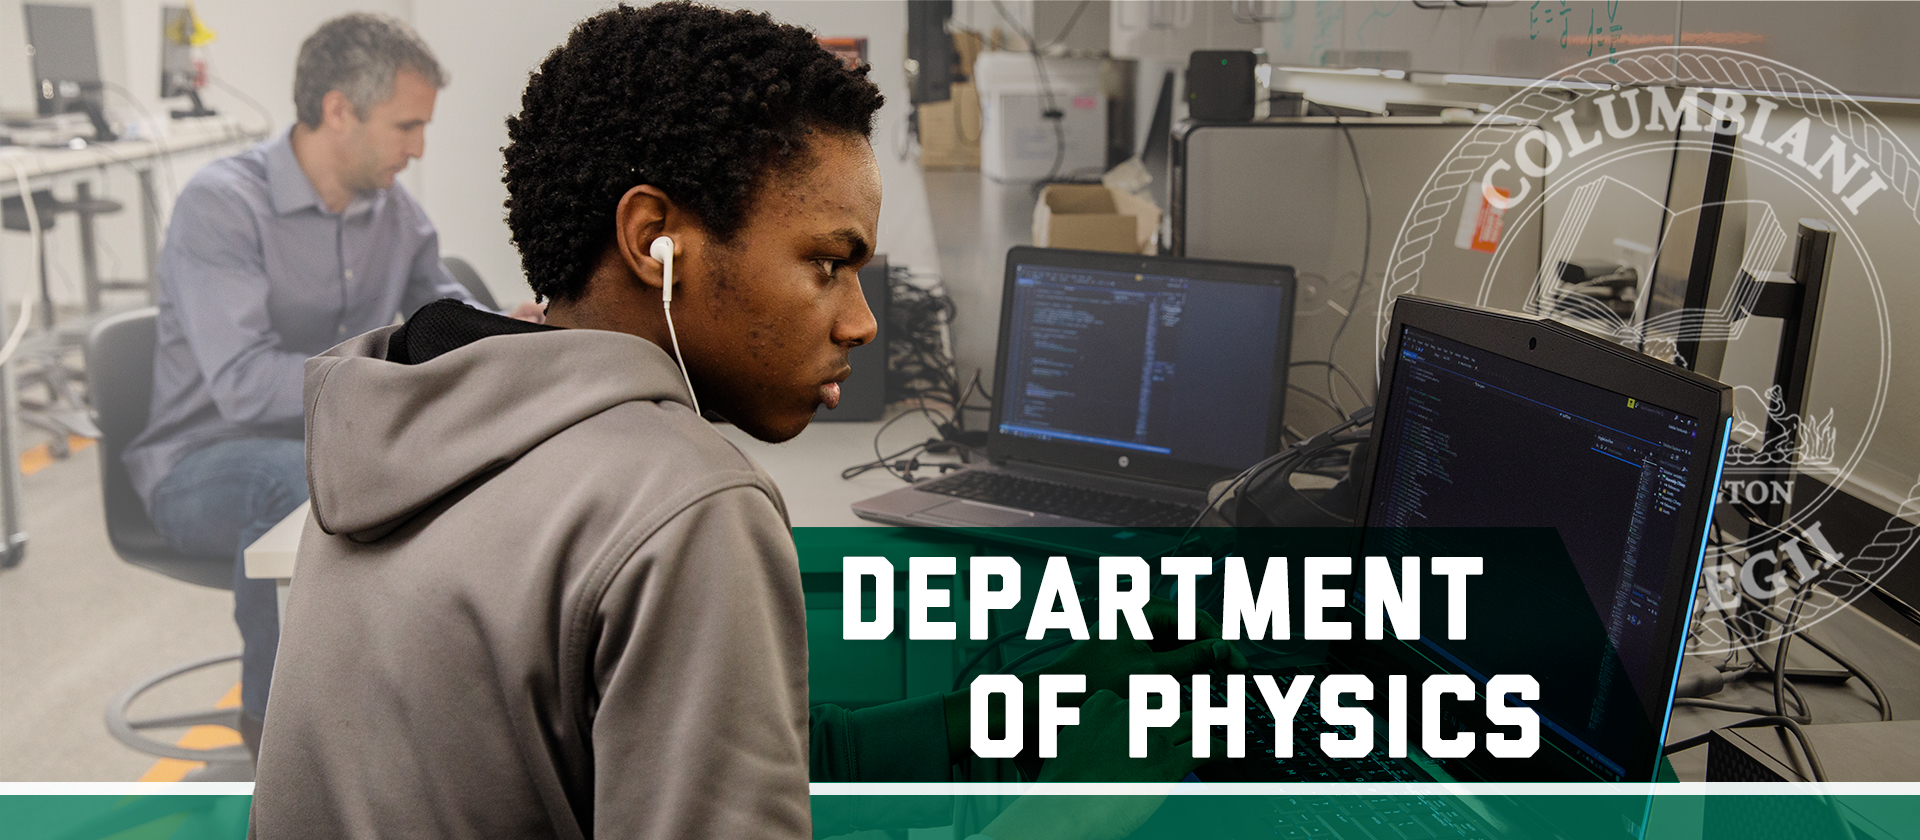 a black CCAS undergraduate physics student researching on a laptop. Department of Physics, Columbian College seal